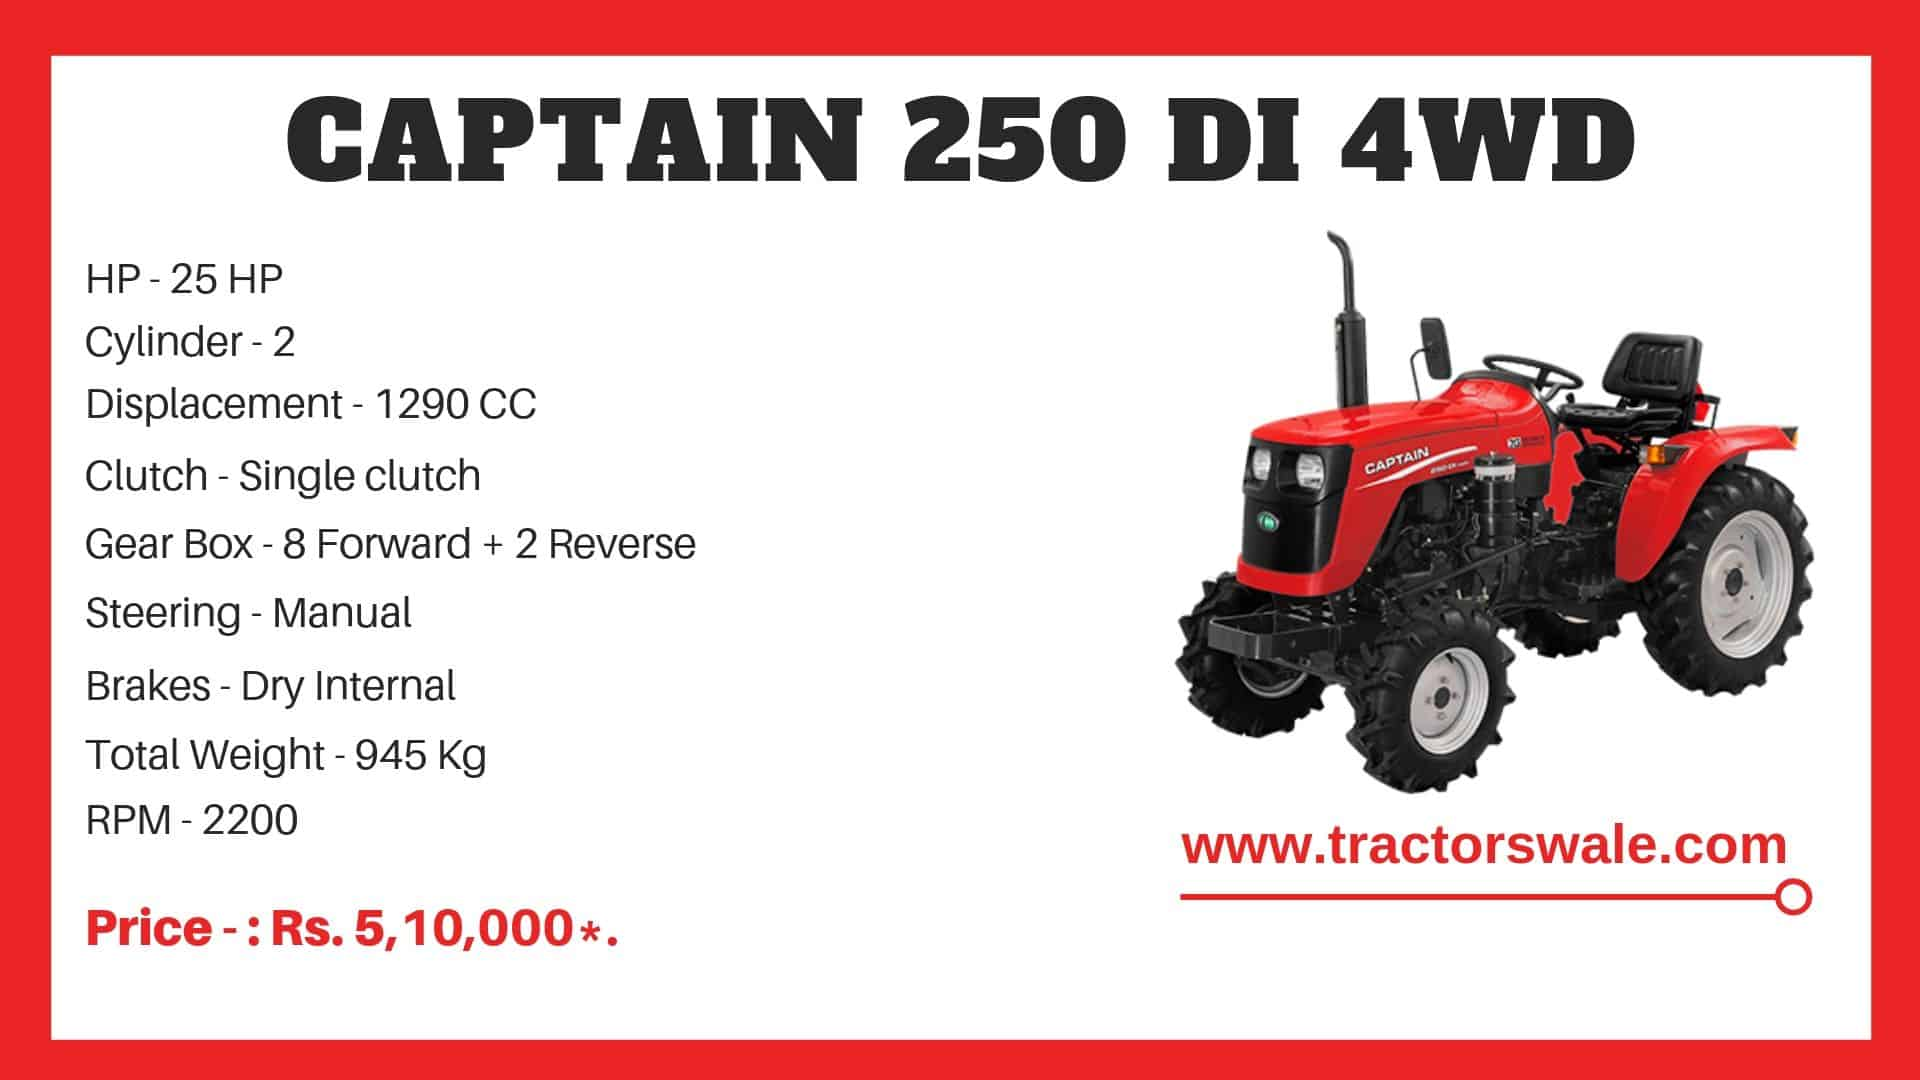 Specification of Captain 250 DI 4WD